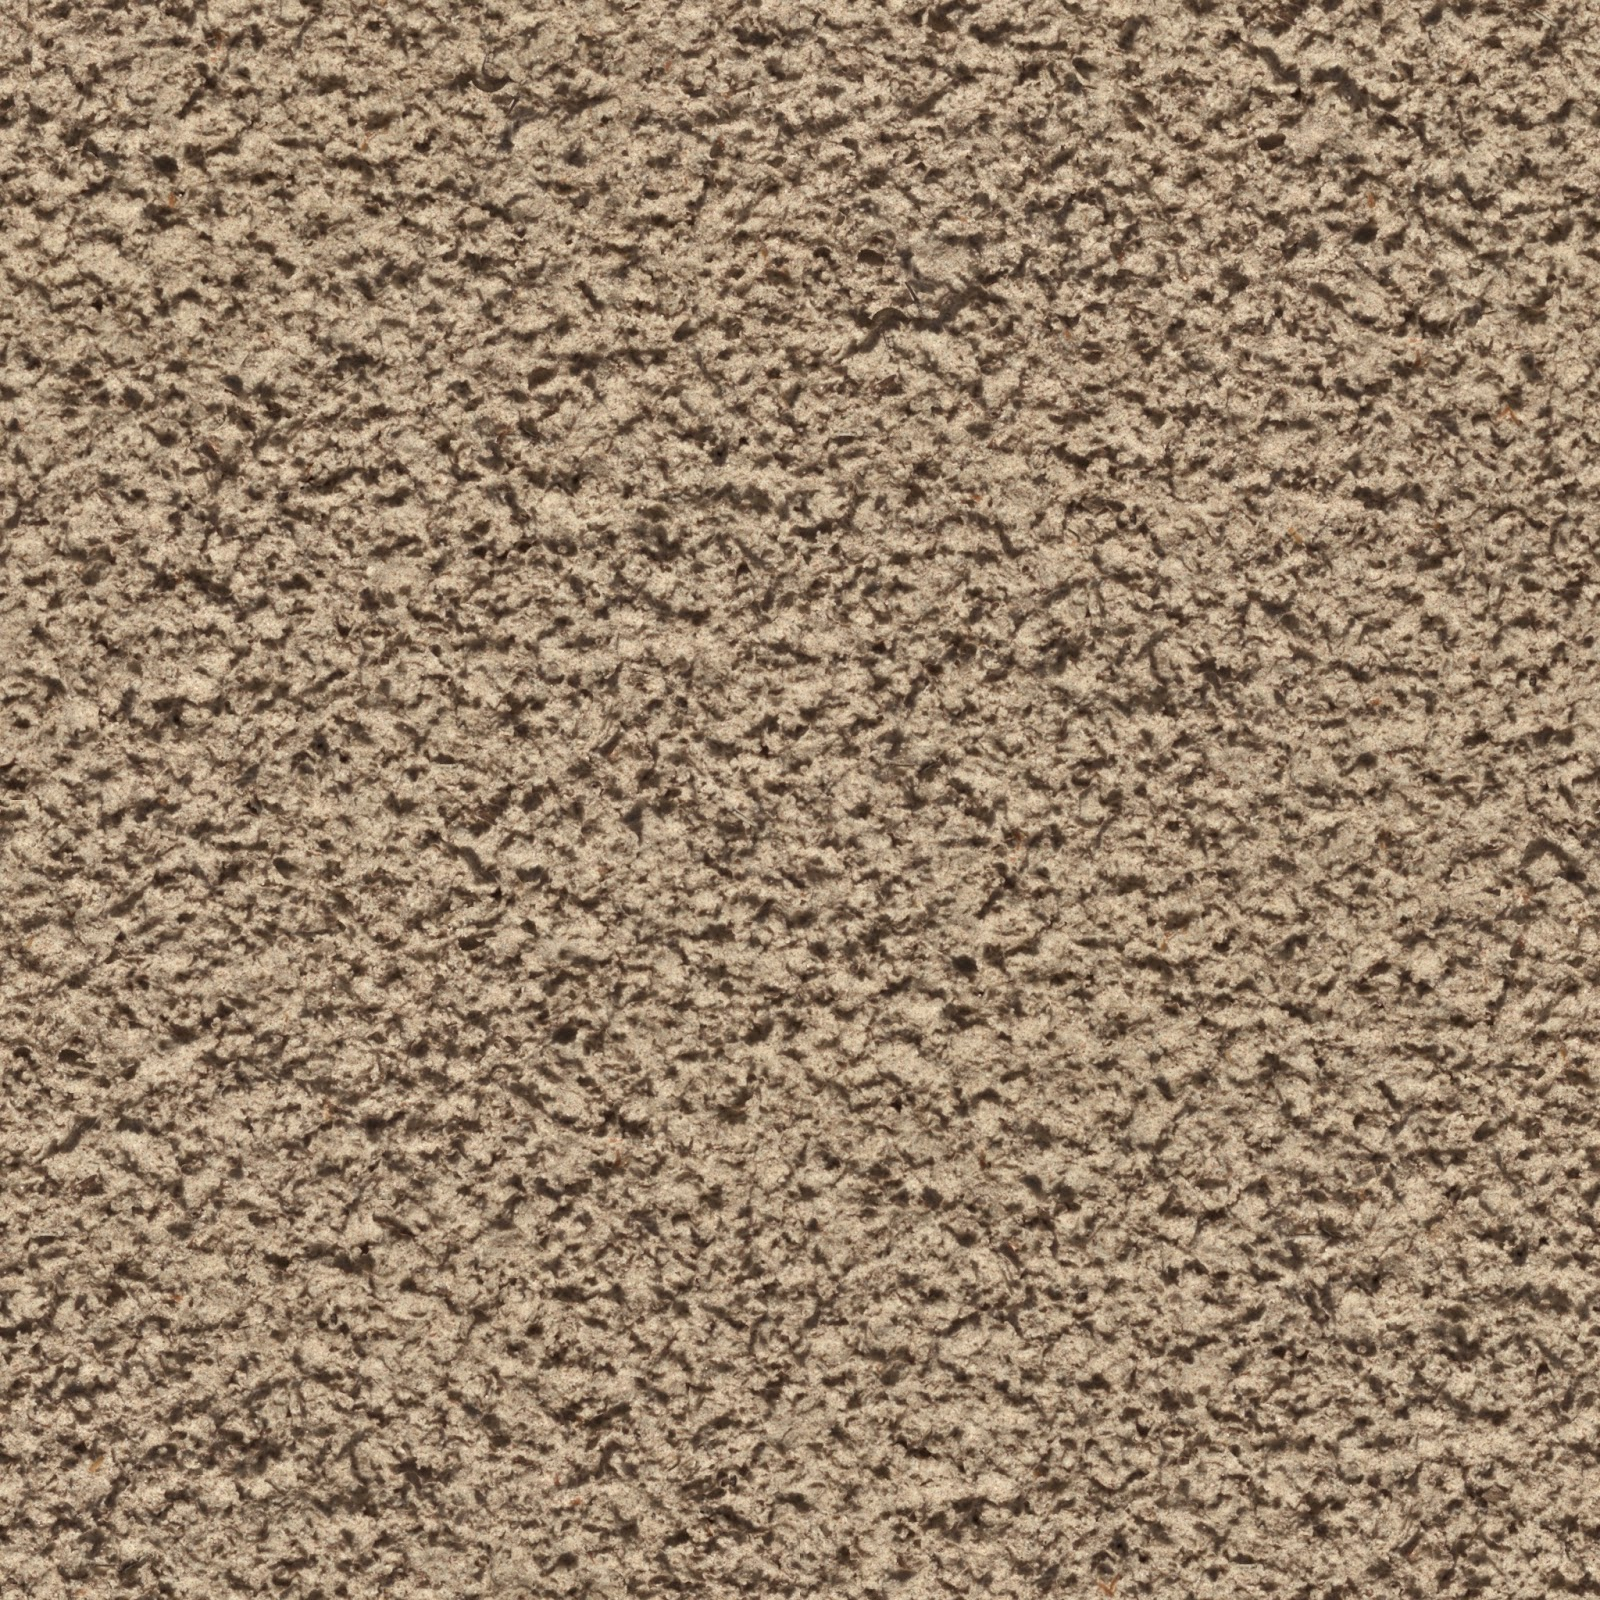 High Resolution Seamless Textures August 2014